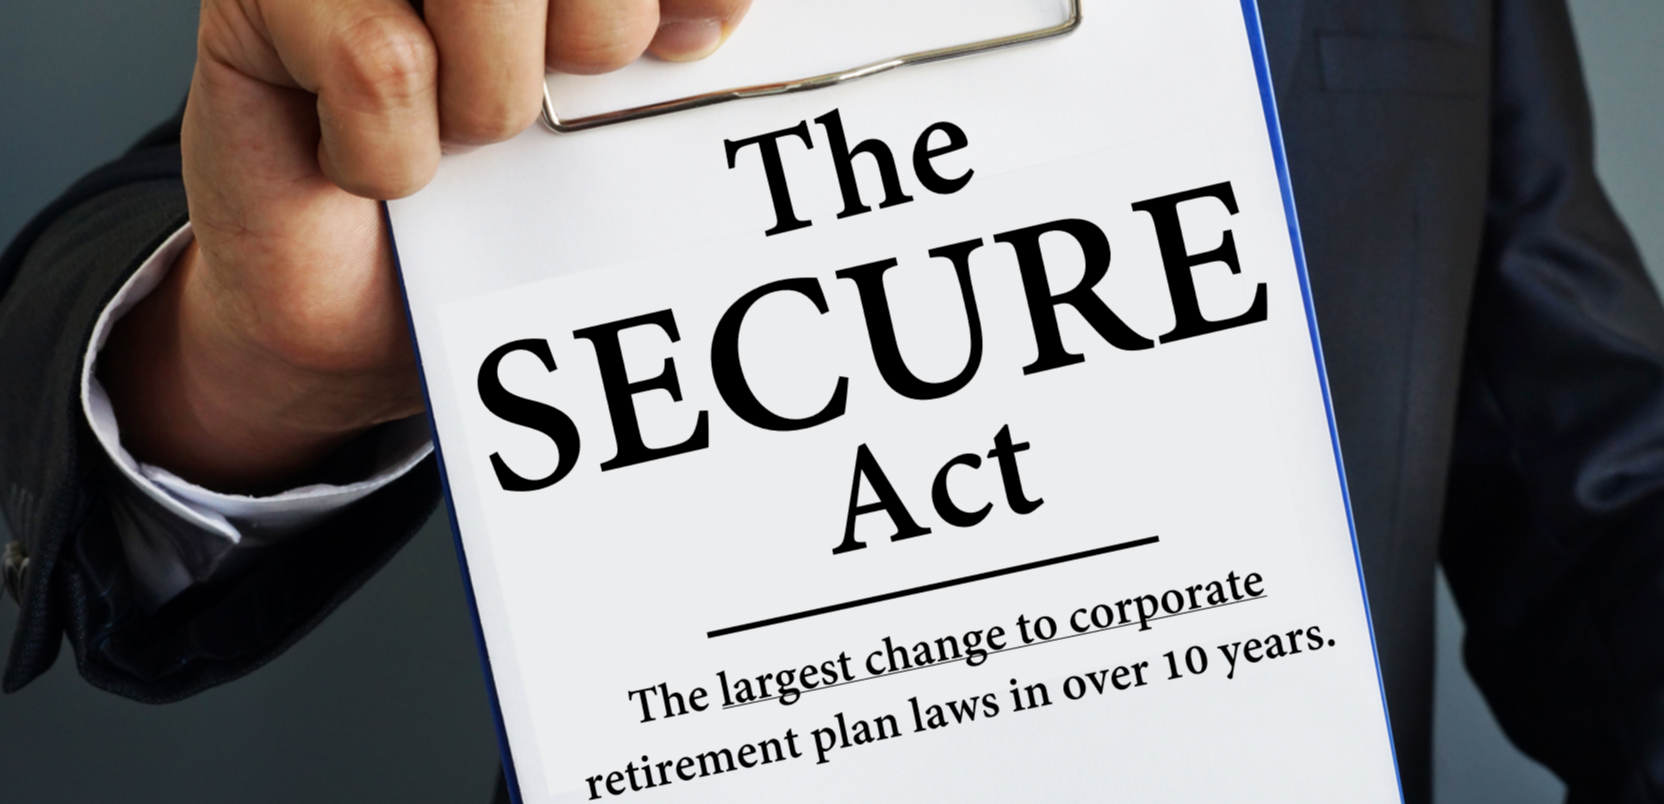 The SECURE Act just passed. What is it? How will it affect you? When does it go into effect?